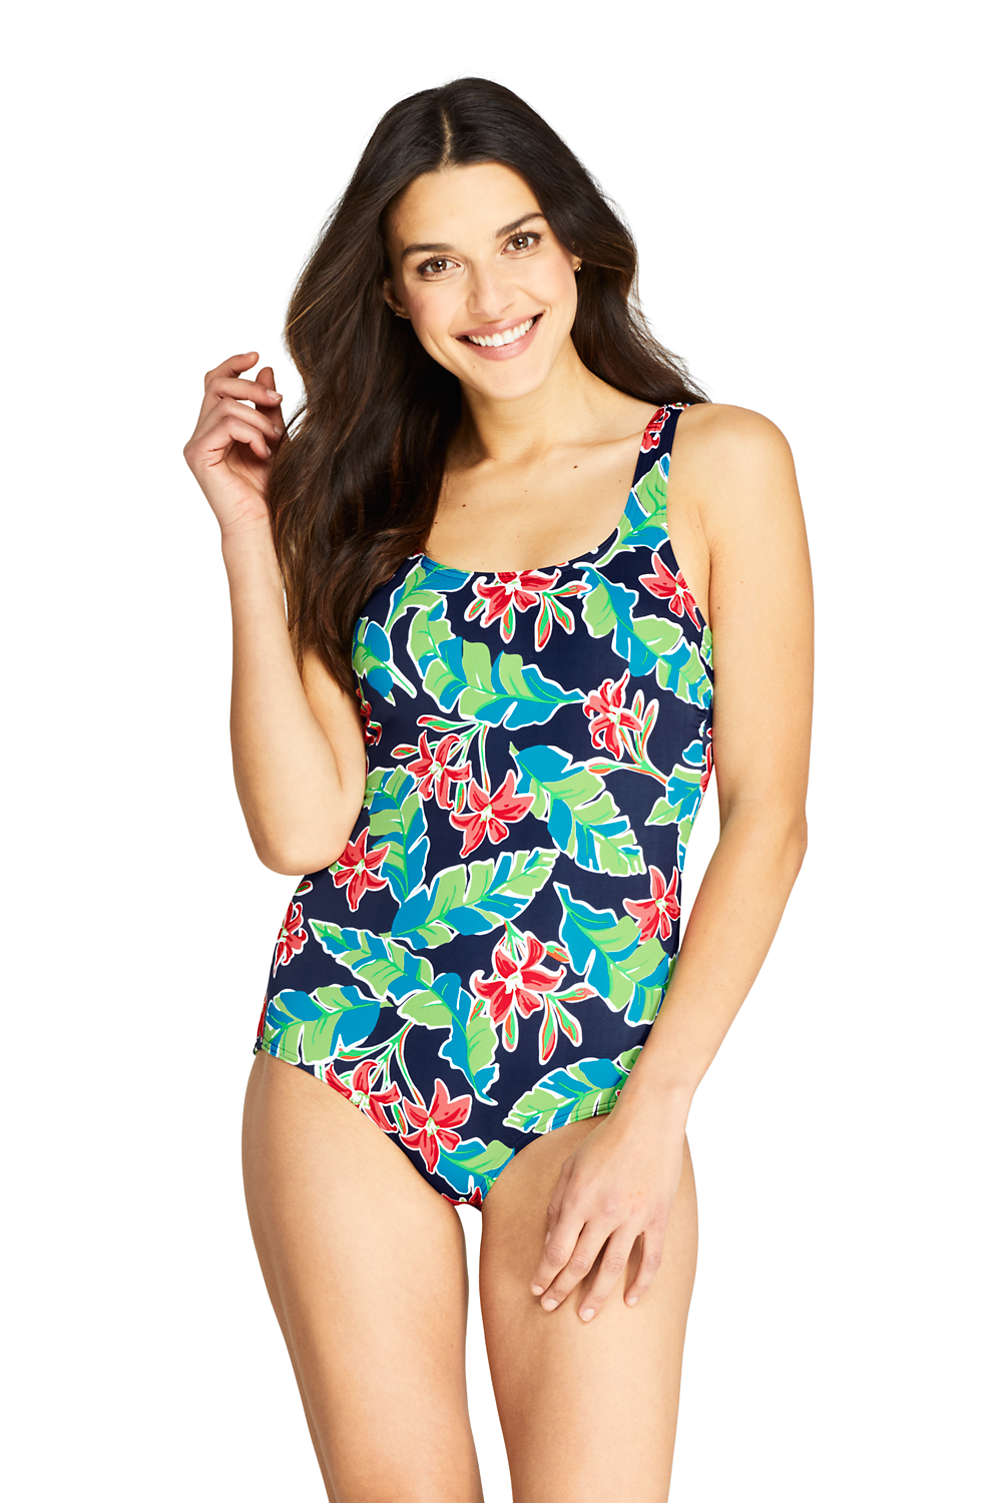 e9a14ee28e Women's Tugless One Piece Swimsuit Soft Cup Print from Lands' End